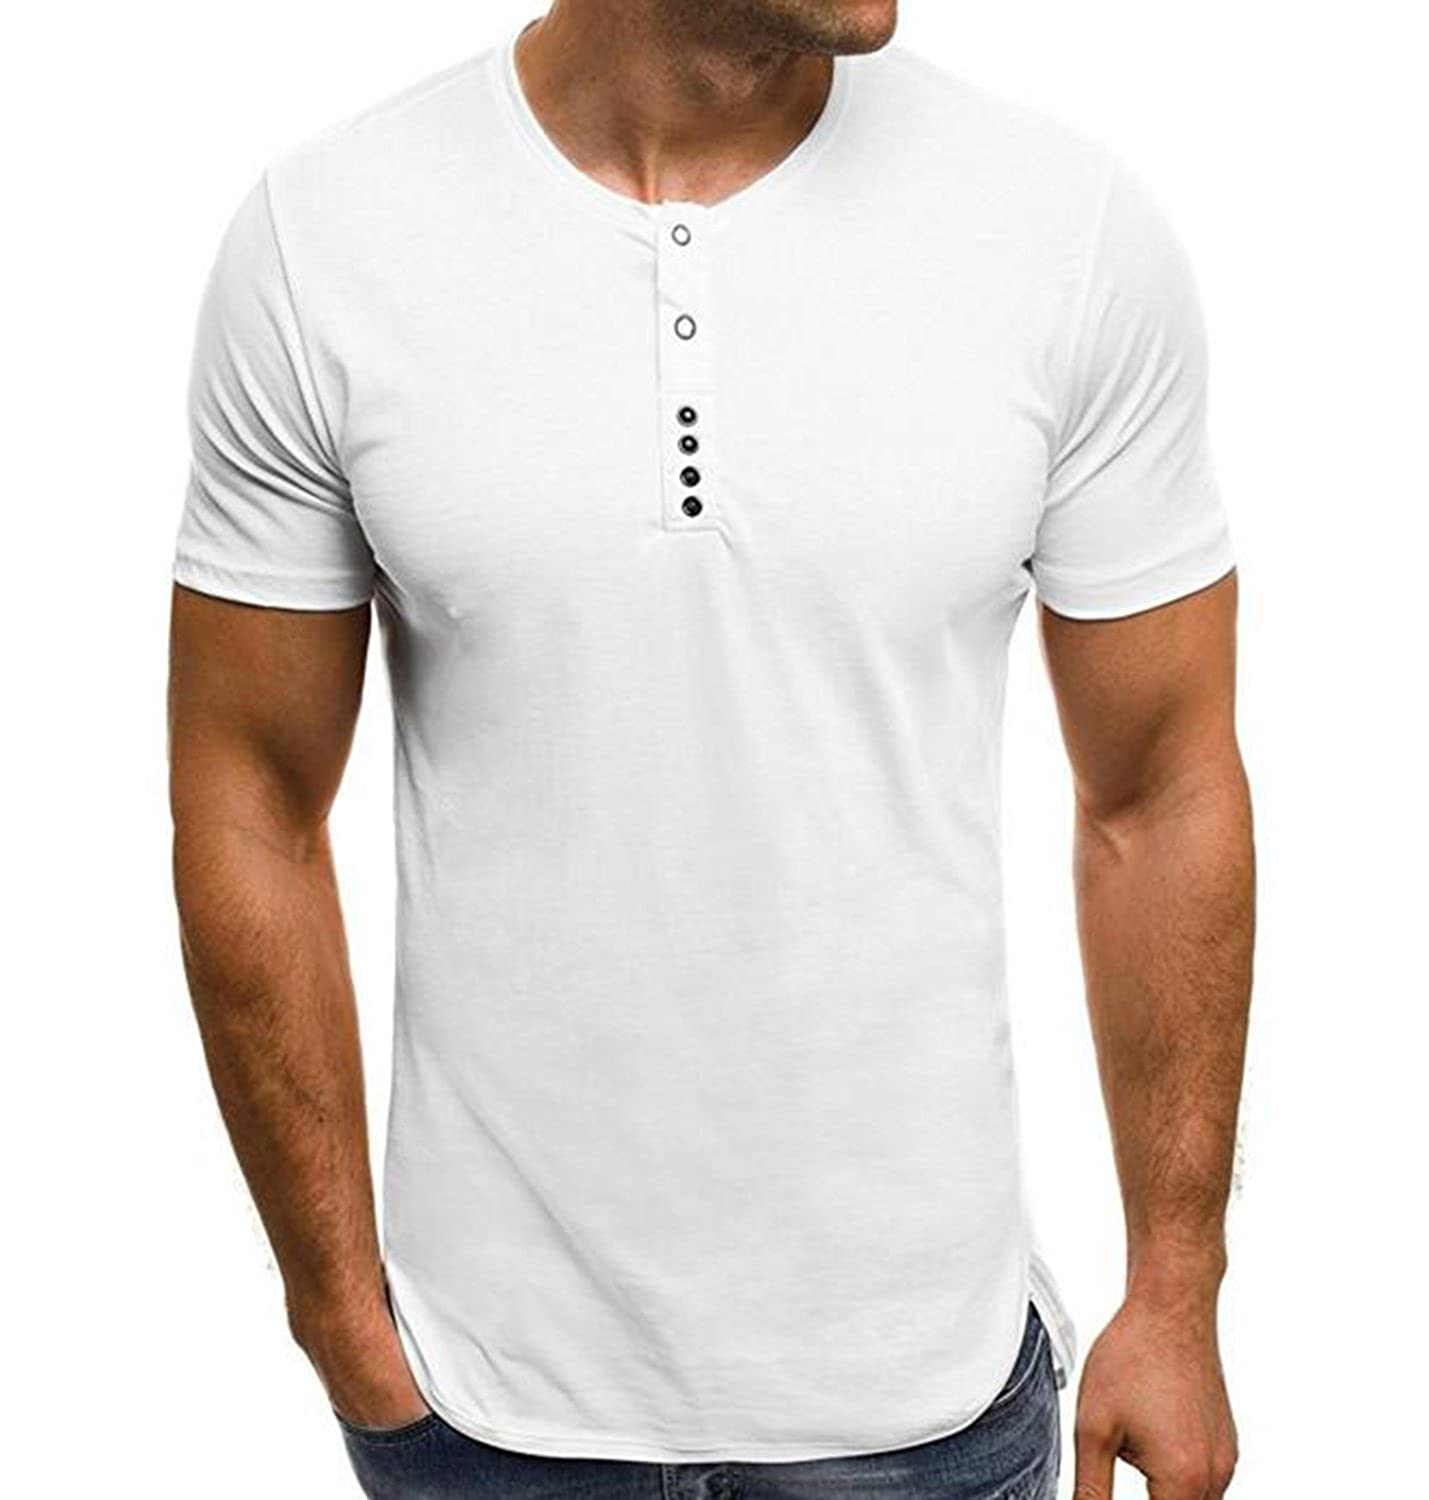 WIFORNT Men's Casual Short Sleeve Henley Slim Fit T-Shirt Button Athletic Tee Tops